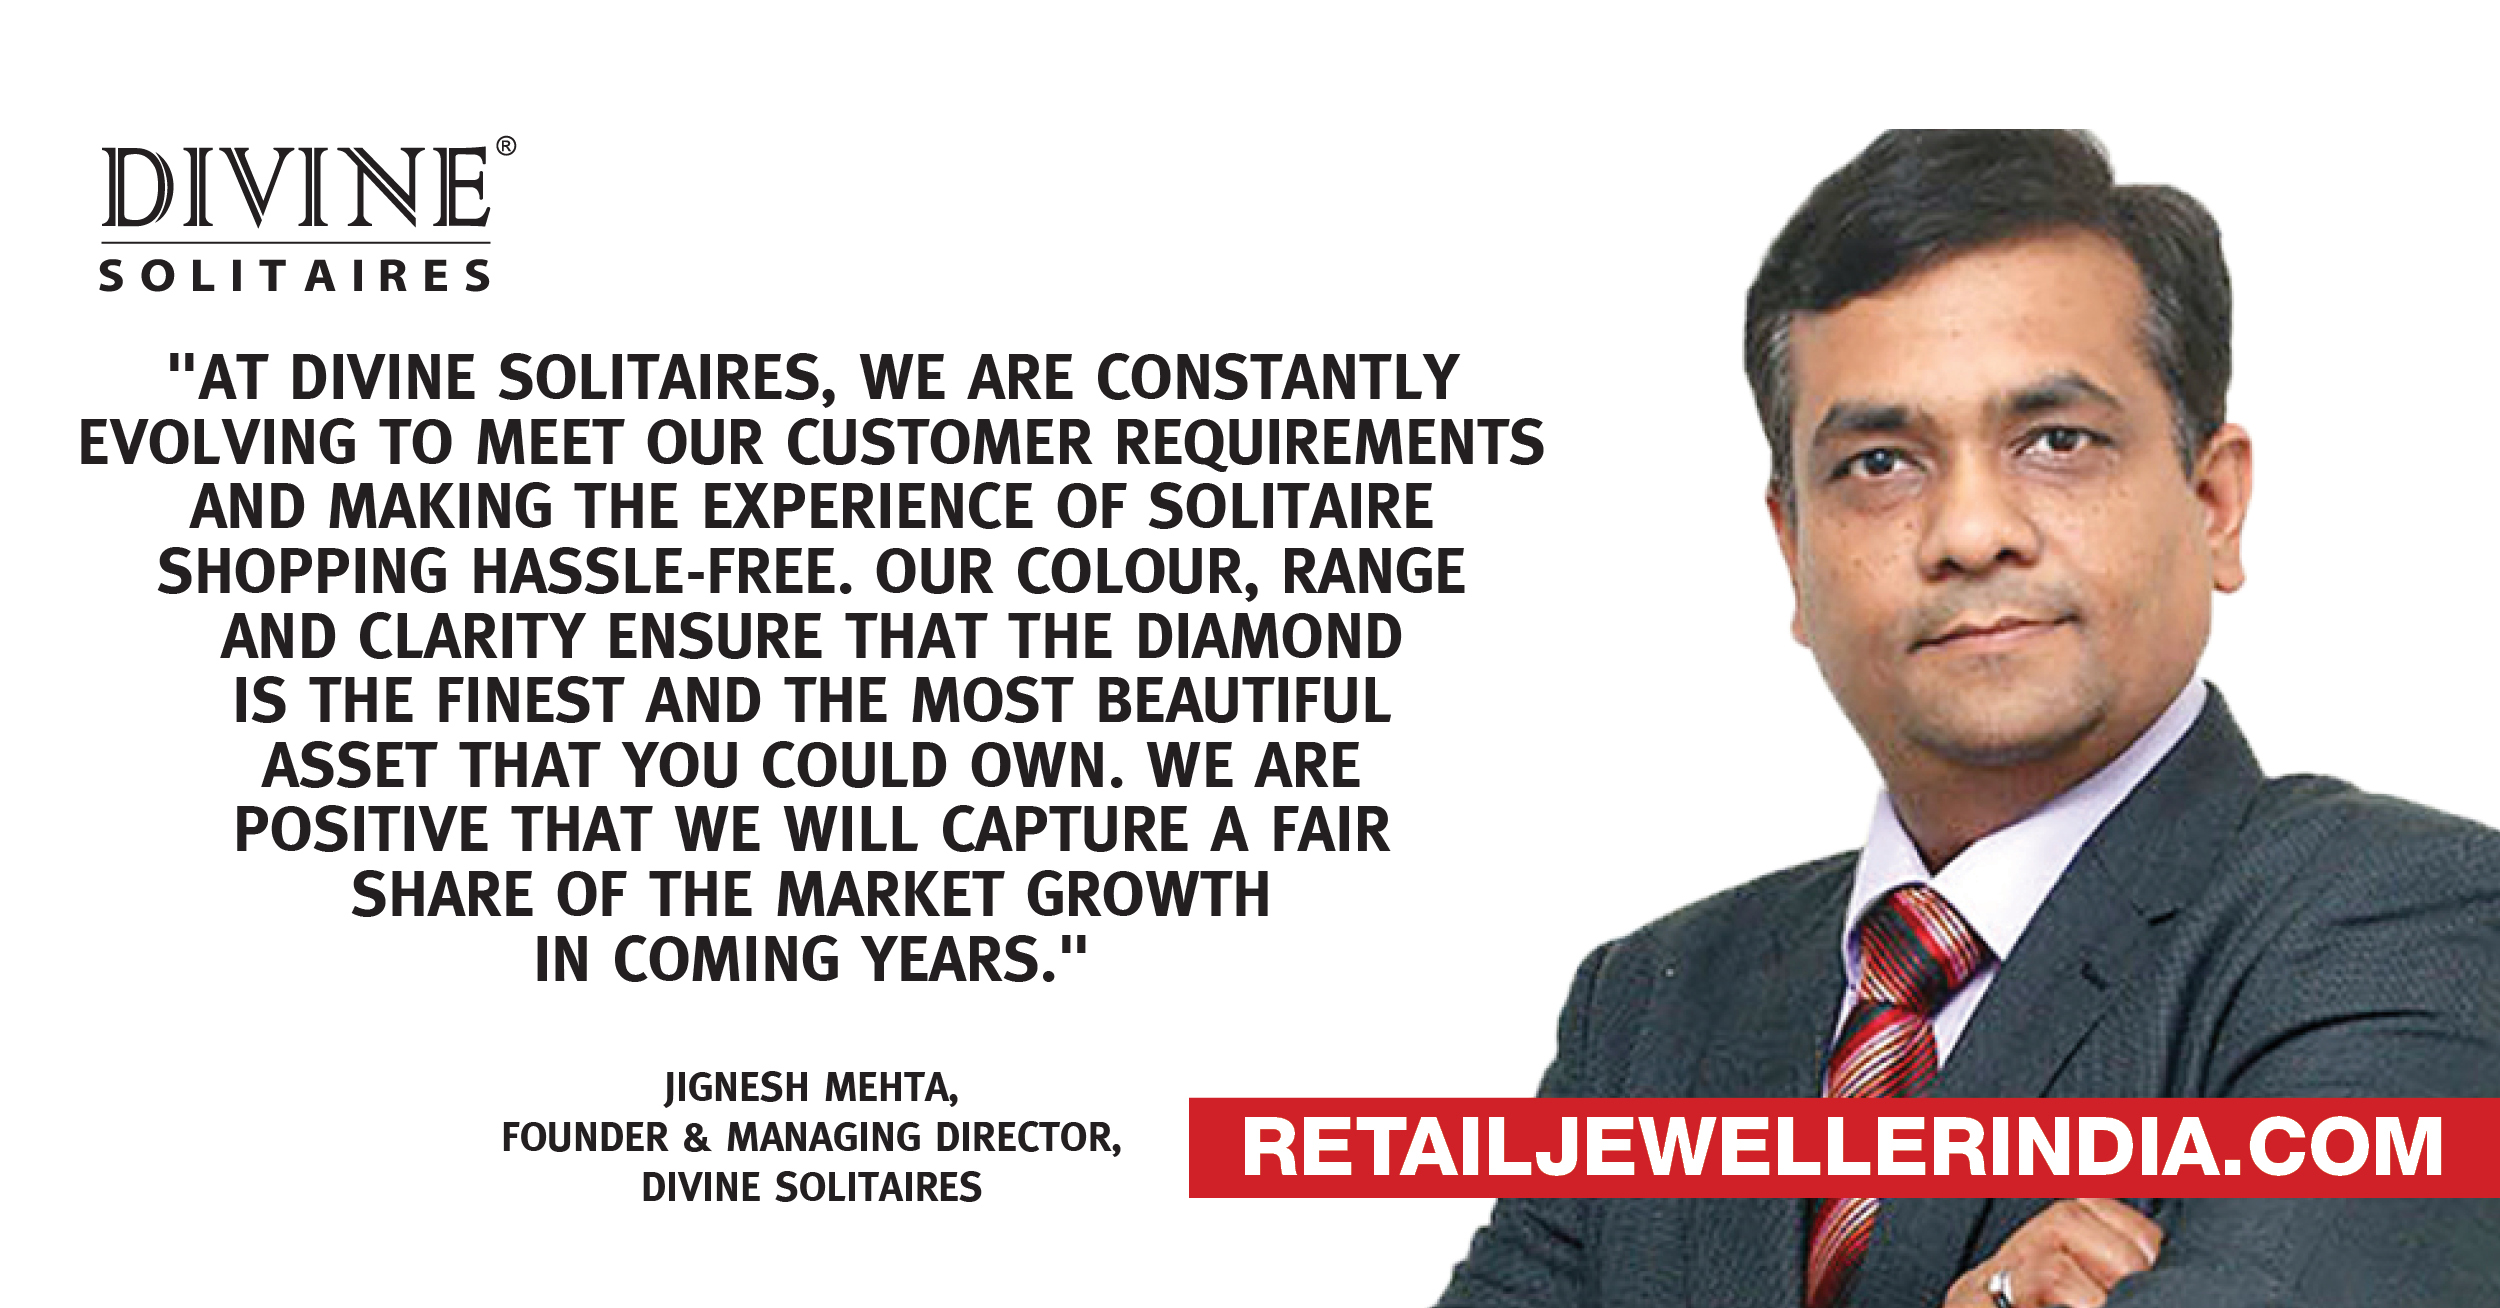 Jignesh Mehta, Founder and Managing Director of Divine Solitaires